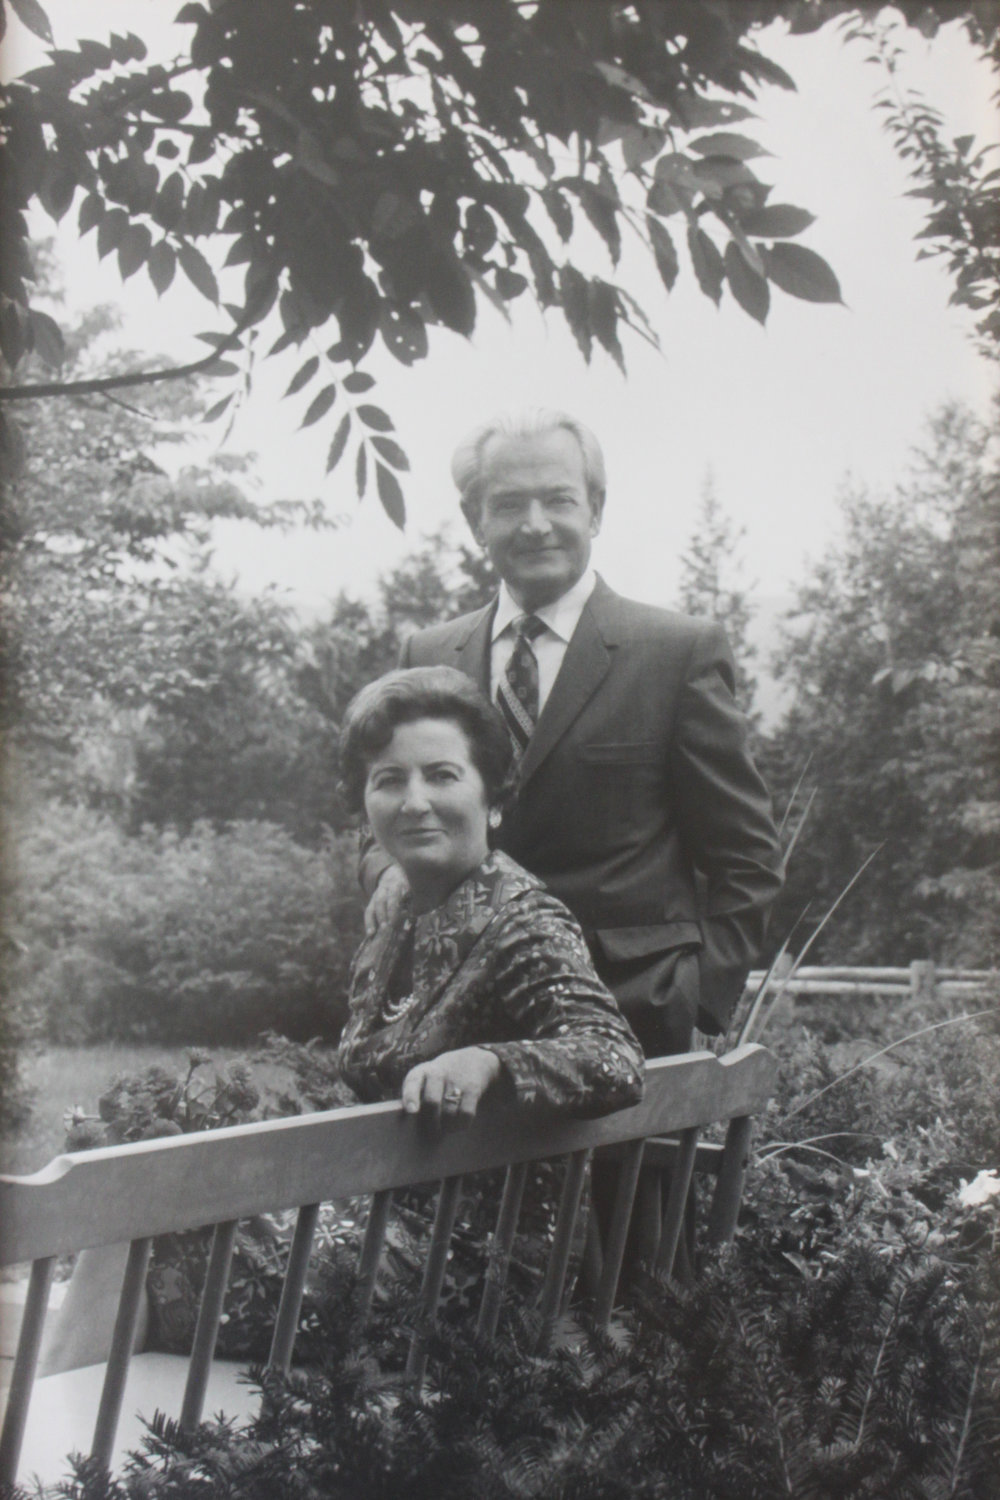 Michael and Wife 1940s.jpg